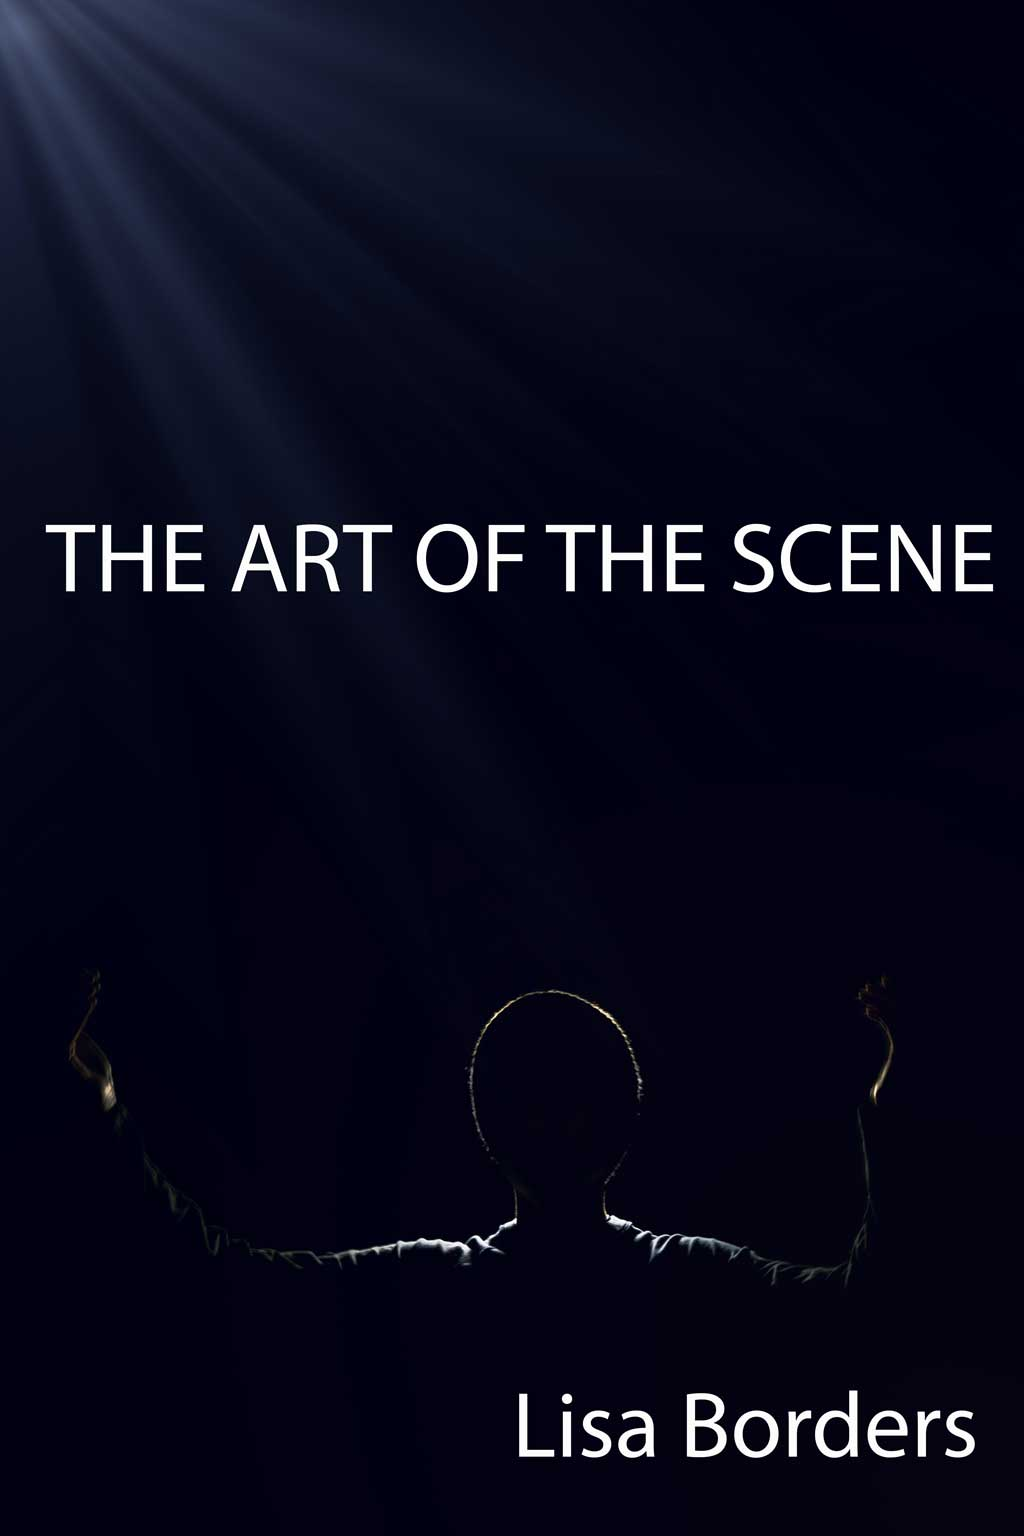 The art of the scene cover image